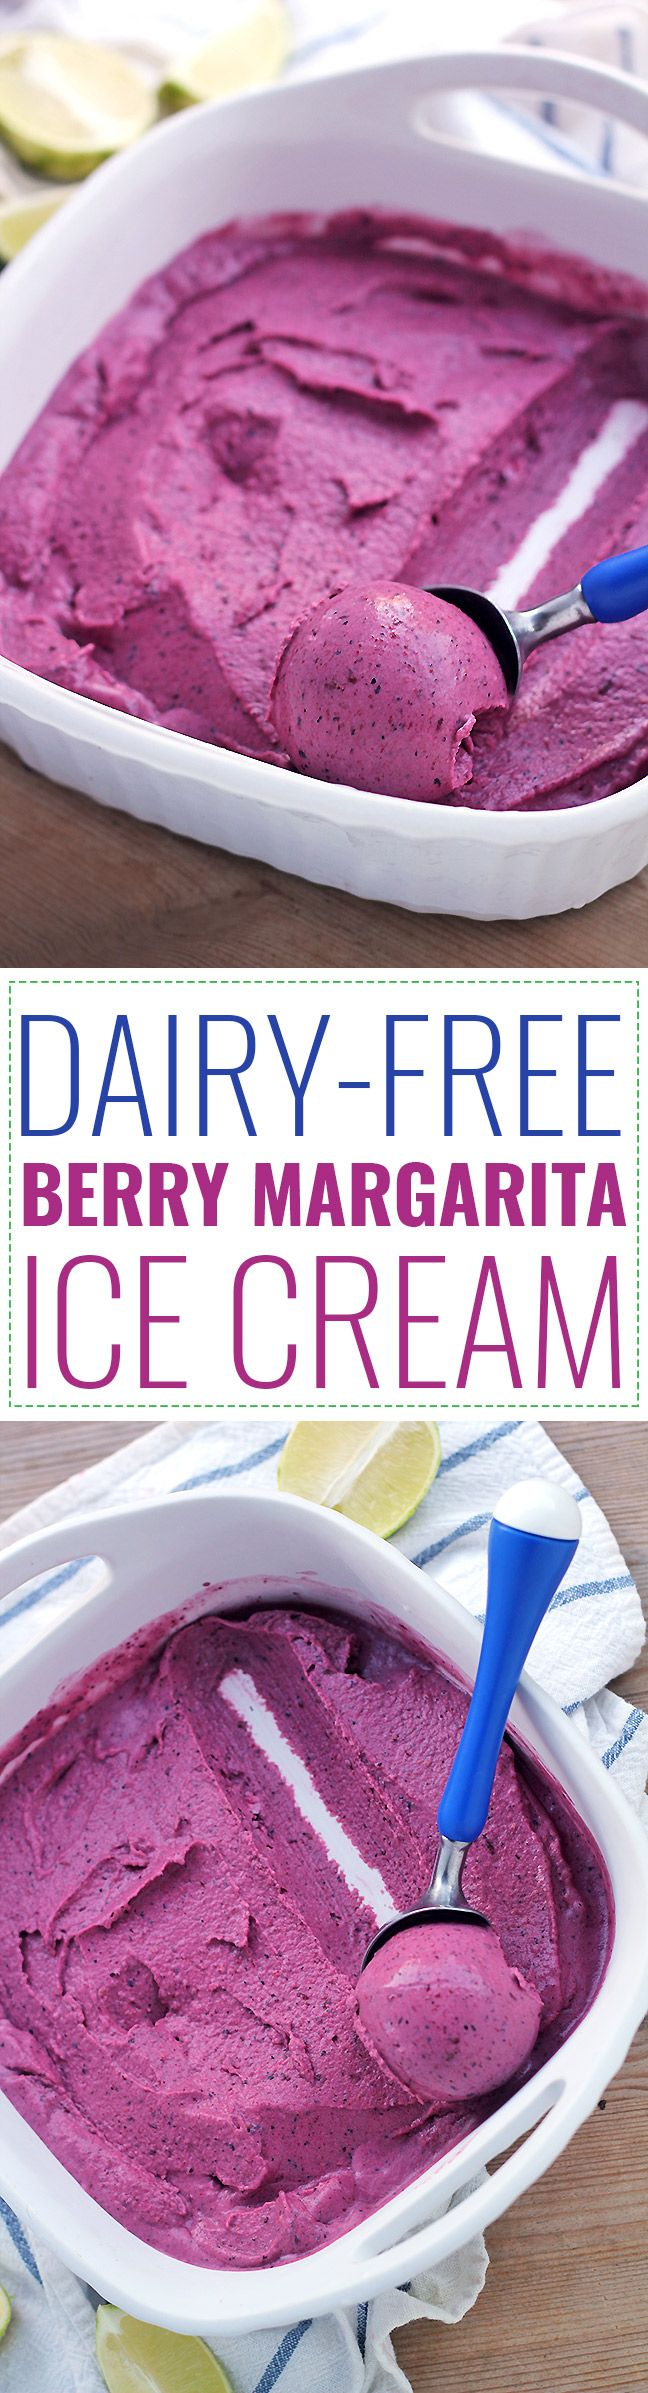 Dairy-Free Berry Margarita Ice Cream Recipe! This creamy dairy-free berry margarita ice cream is rich in antioxidants, full of healthy fats, and is a healthy way to satisfy a sugar craving!